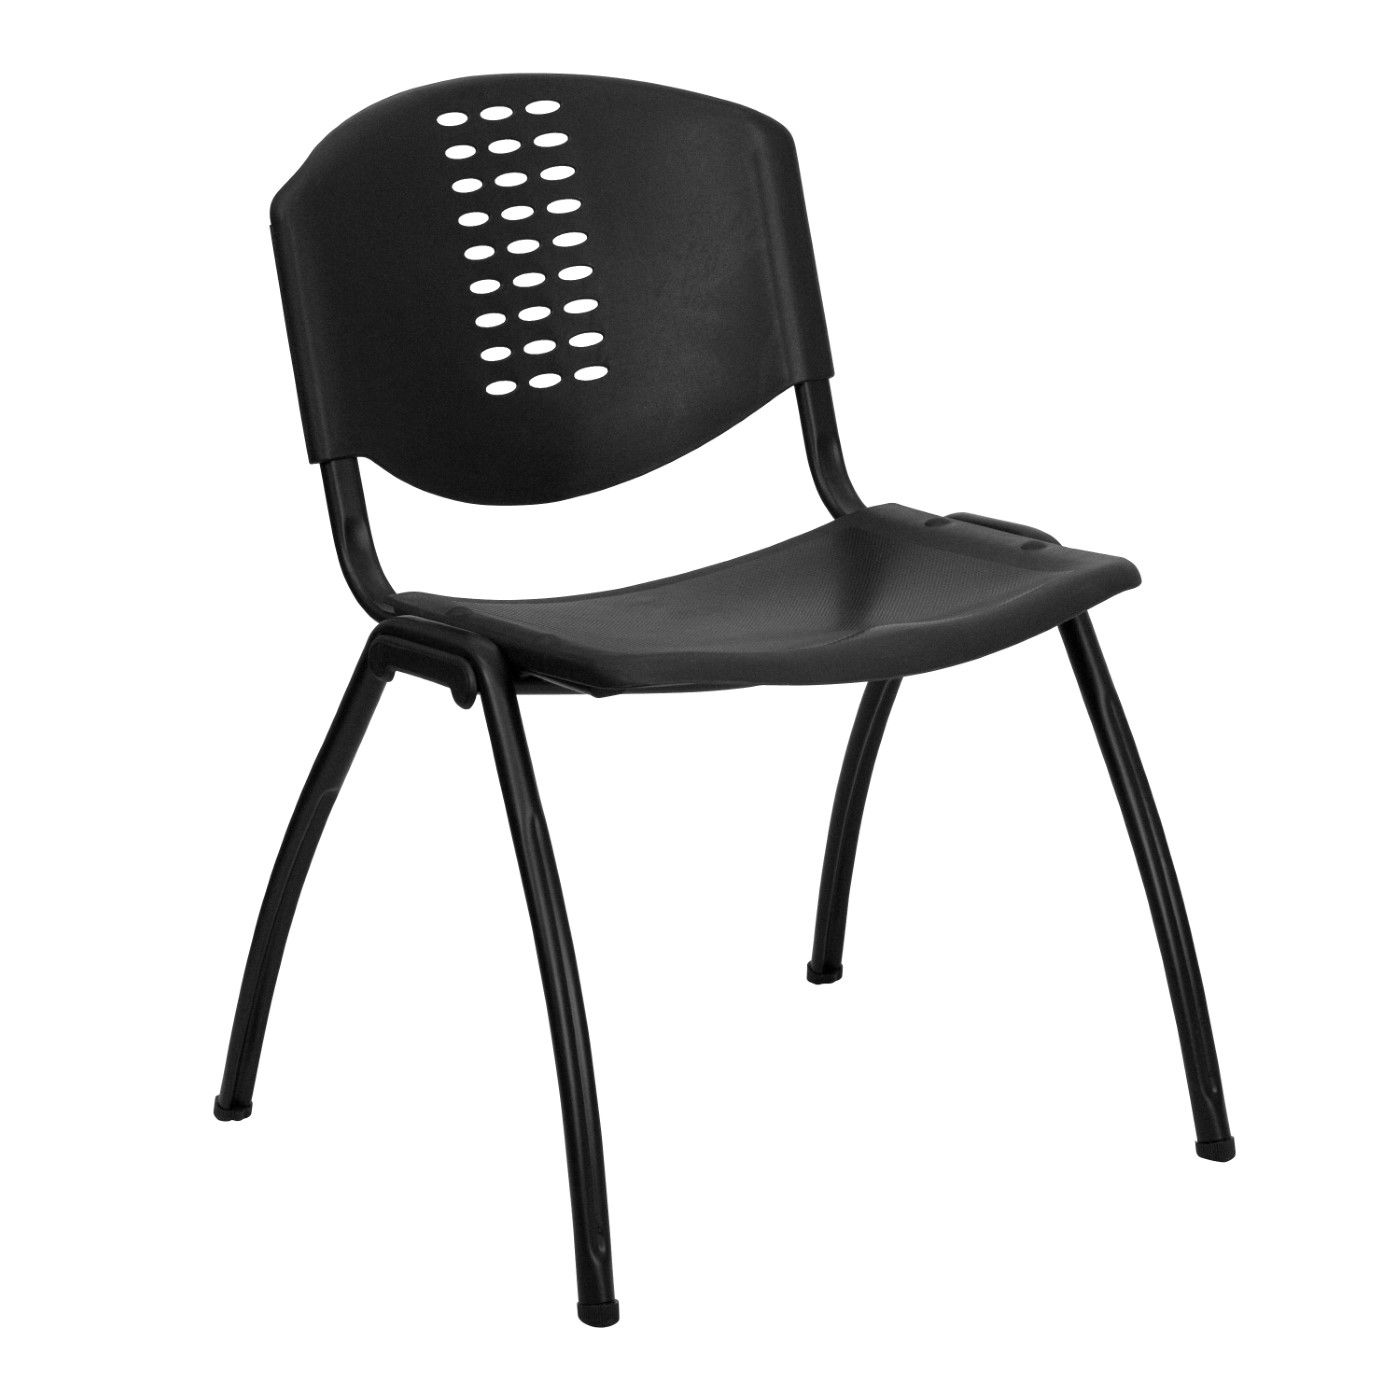 TOUGH ENOUGH Series 880 lb. Capacity Black Plastic Stack Chair with Oval Cutout Back and Black Frame